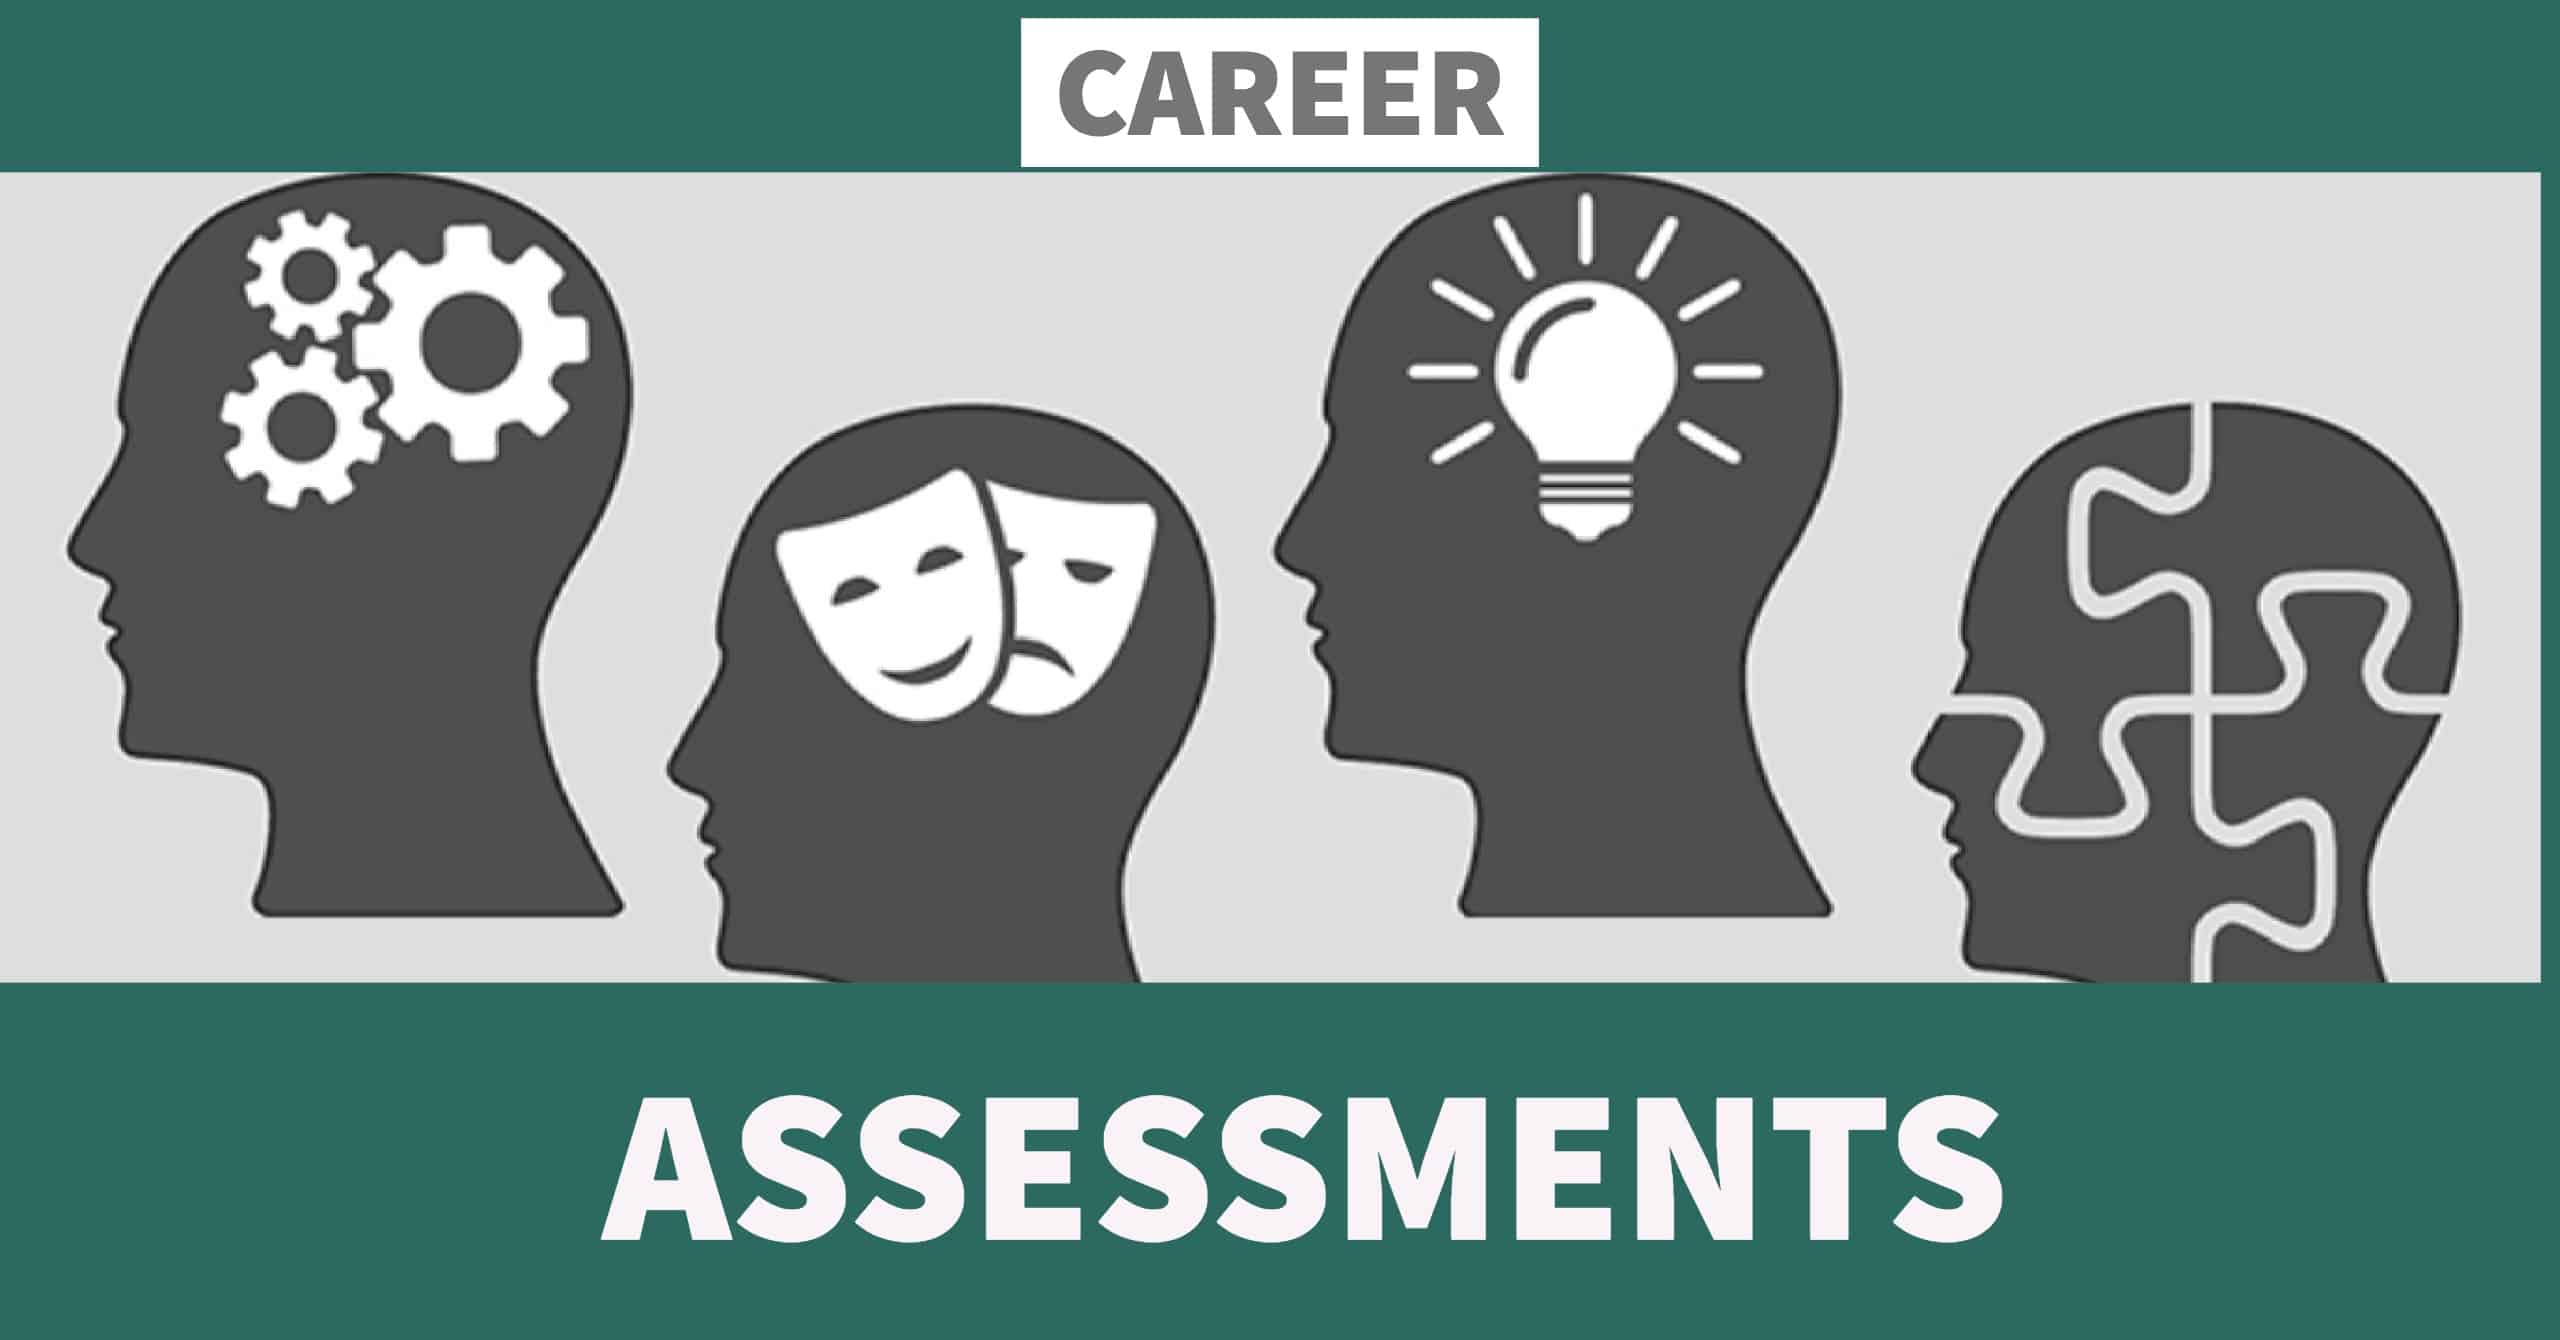 Tests for Students, Job Seekers, Career Changers, and Employees